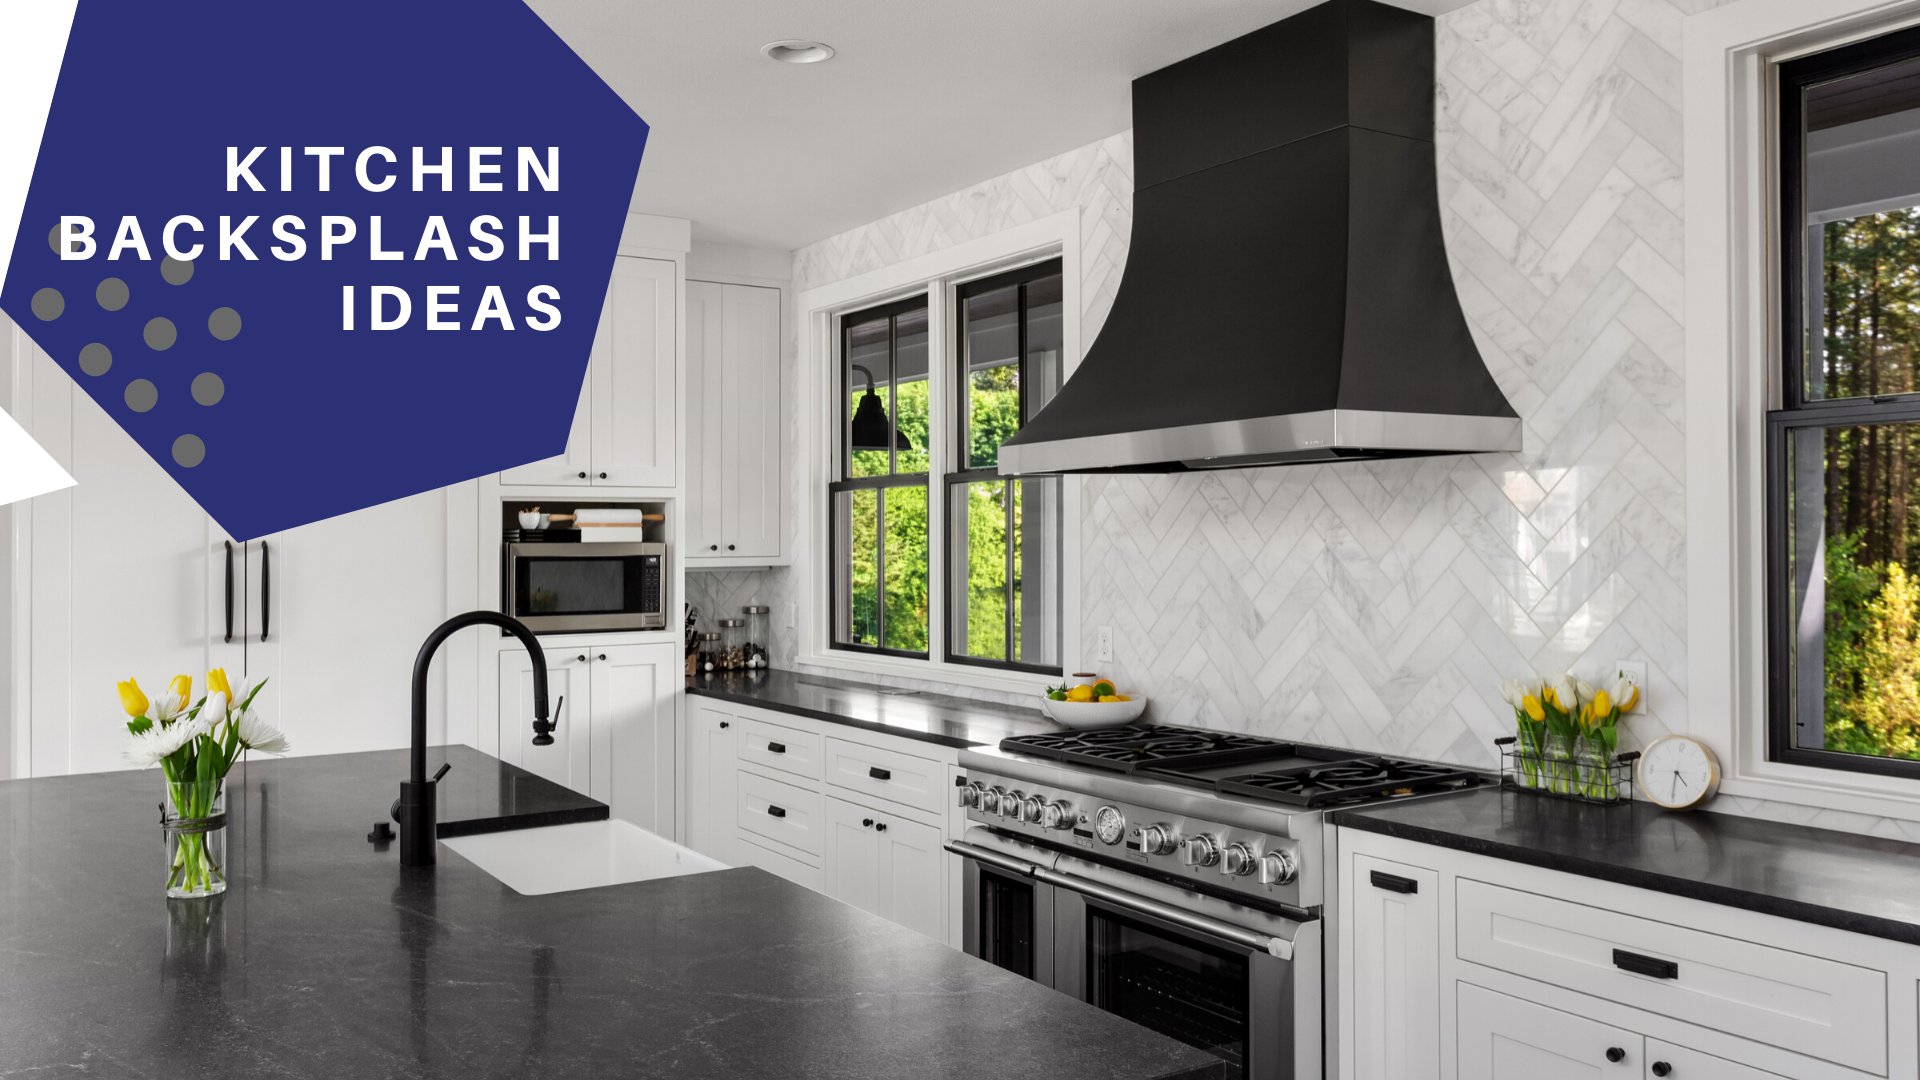 - Kitchen Backsplash Ideas - Tile Superstore & More